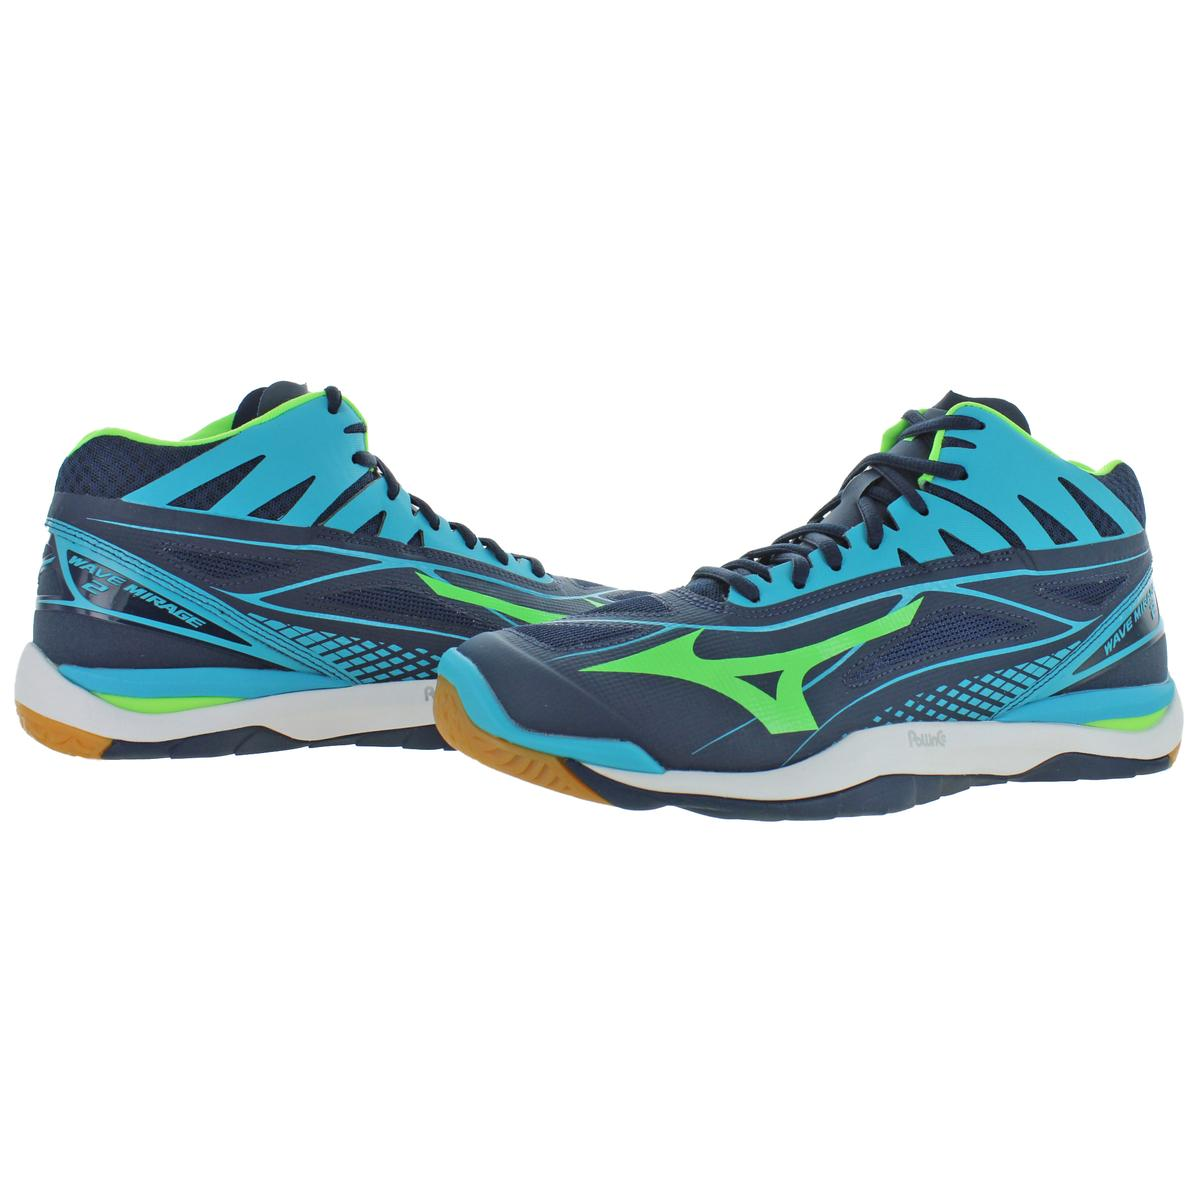 Mizuno-Mens-Wave-Mirage-2-Mid-Lace-Up-Mid-Top-Handball-Sneakers-Shoes-BHFO-9977 thumbnail 8